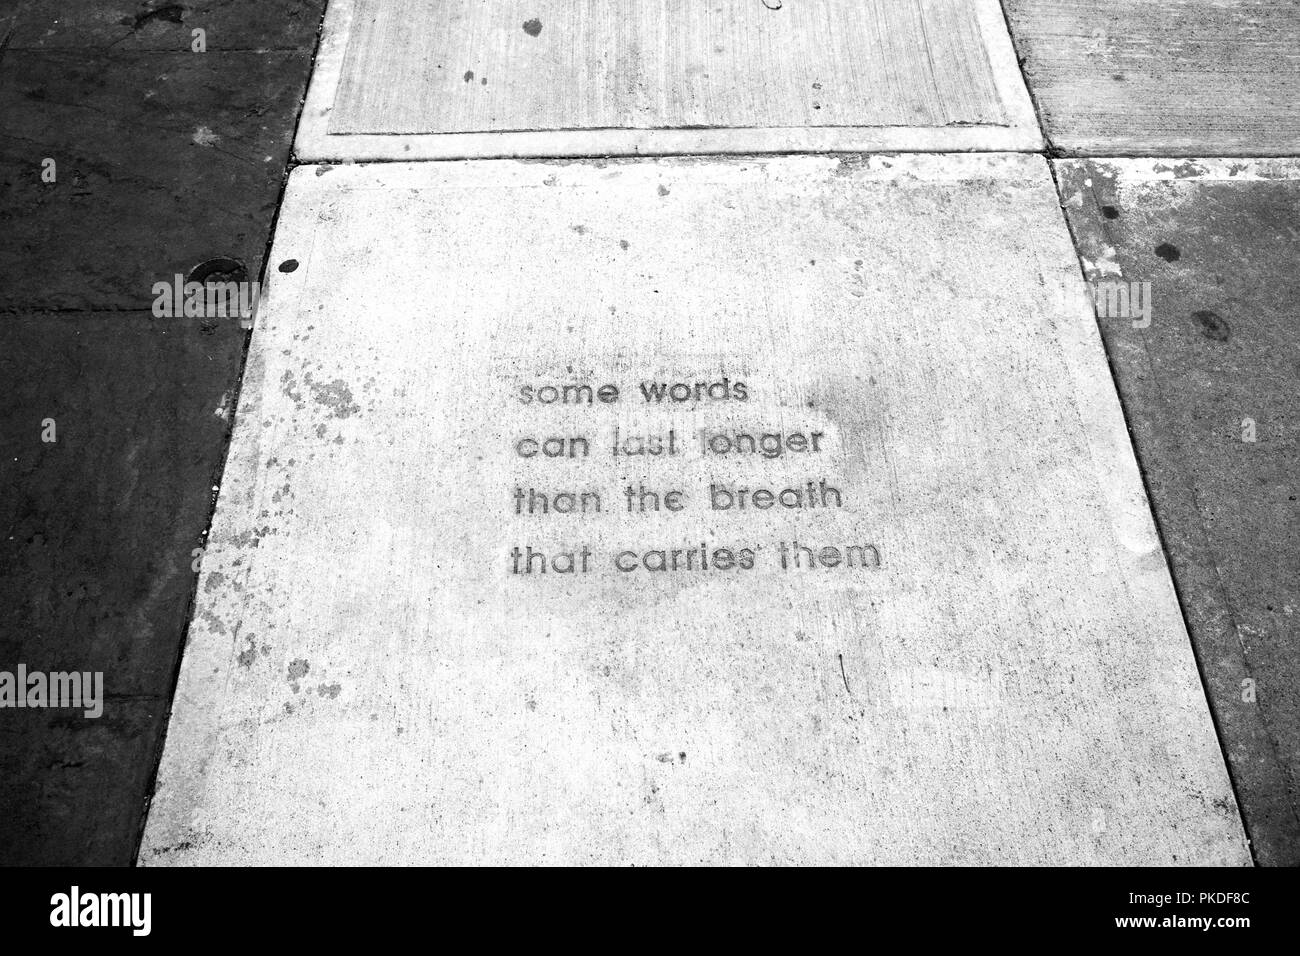 New concrete blocks in Appleton Wisconsin have inspiring words incised in the sidewalk - Stock Image